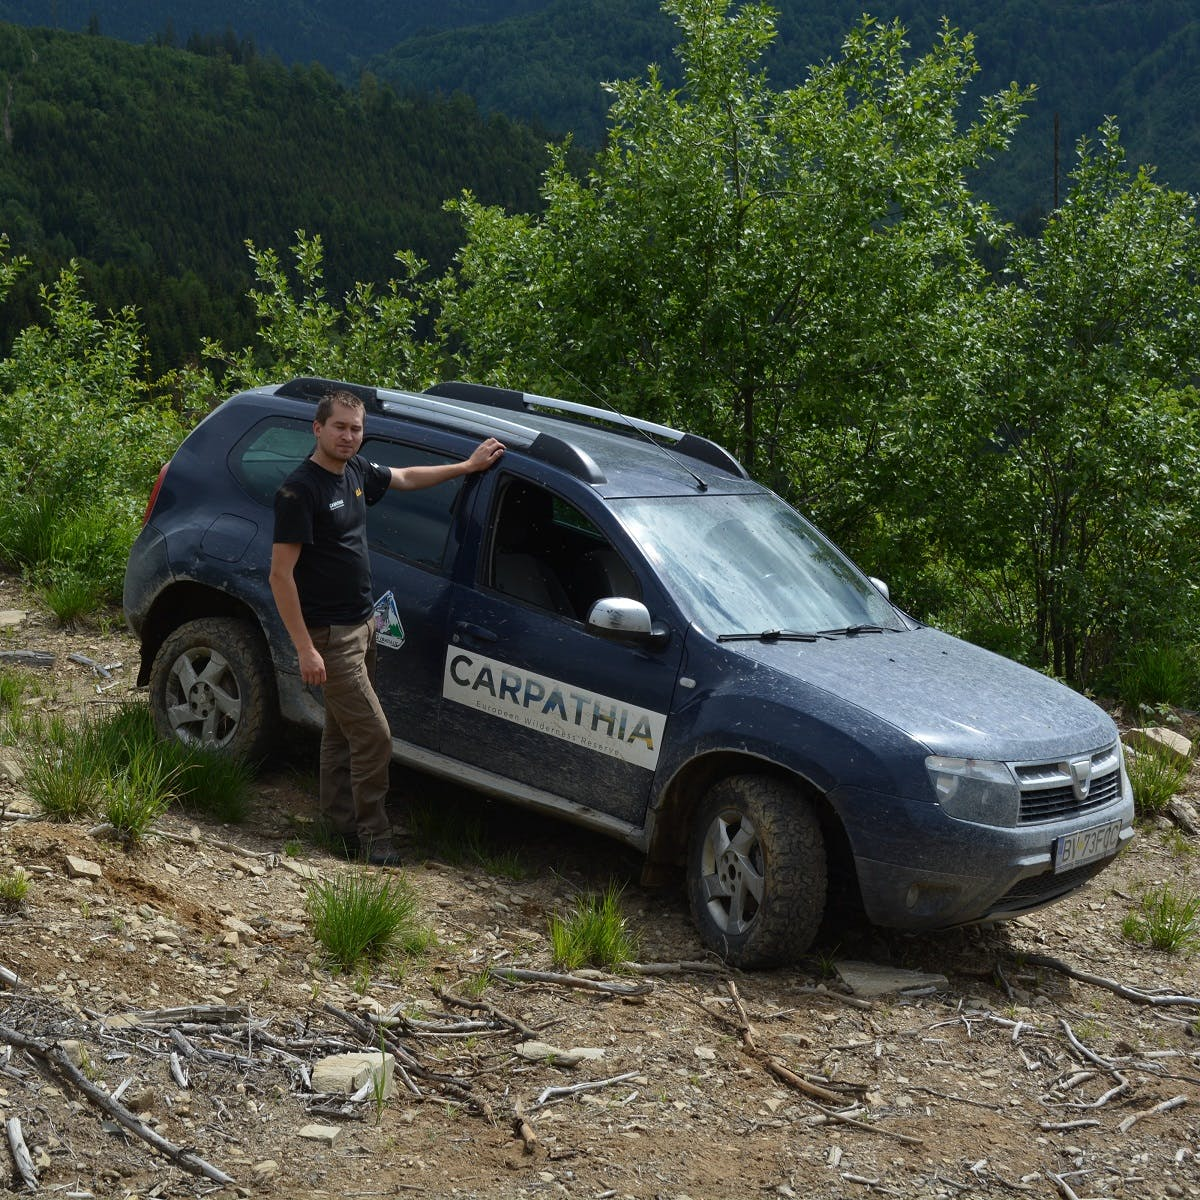 A ranger on patrol in the Southern Carpathian mountains, Romania.